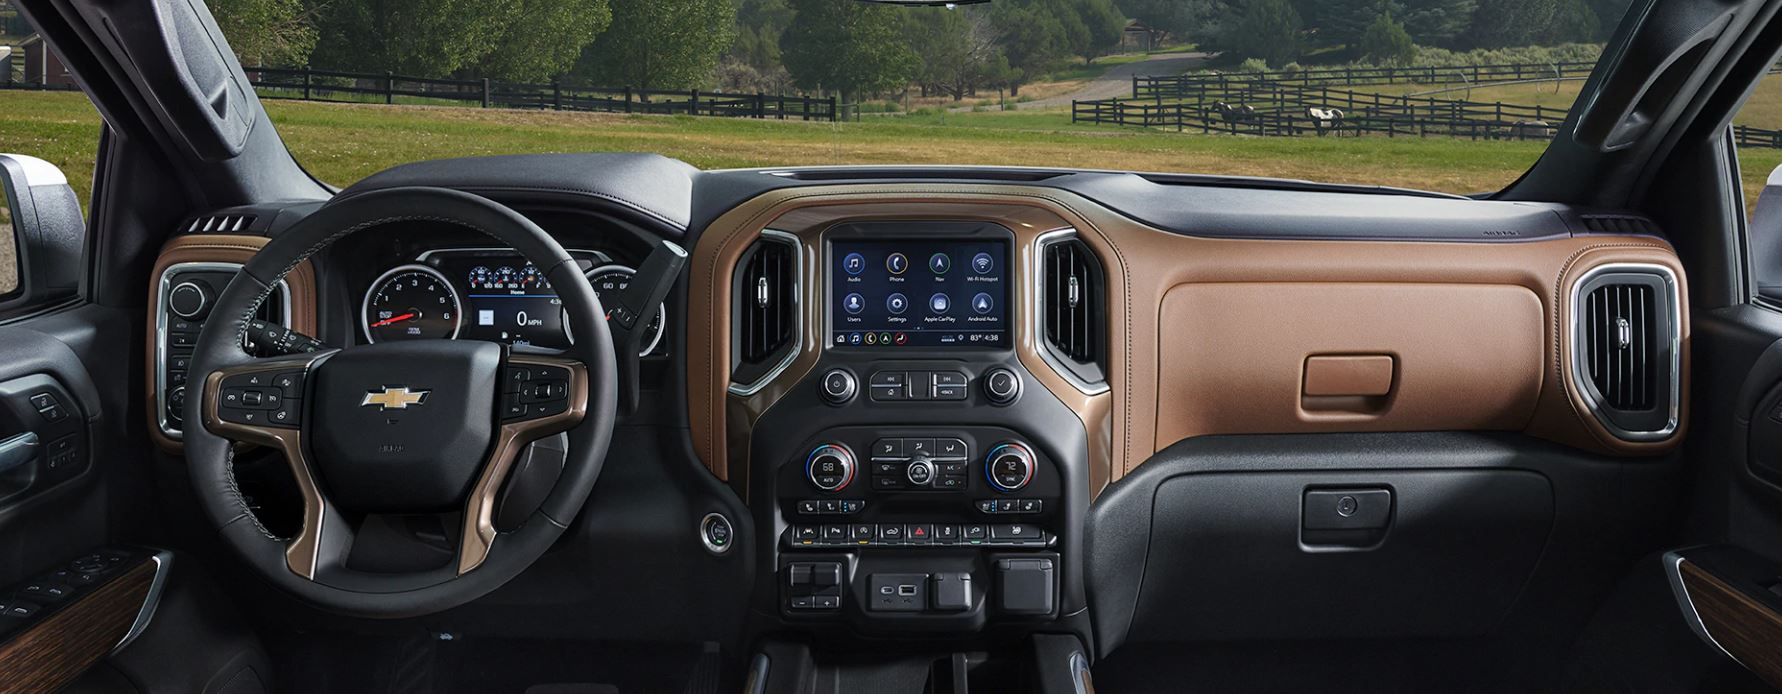 Interior of the 2020 Silverado 1500